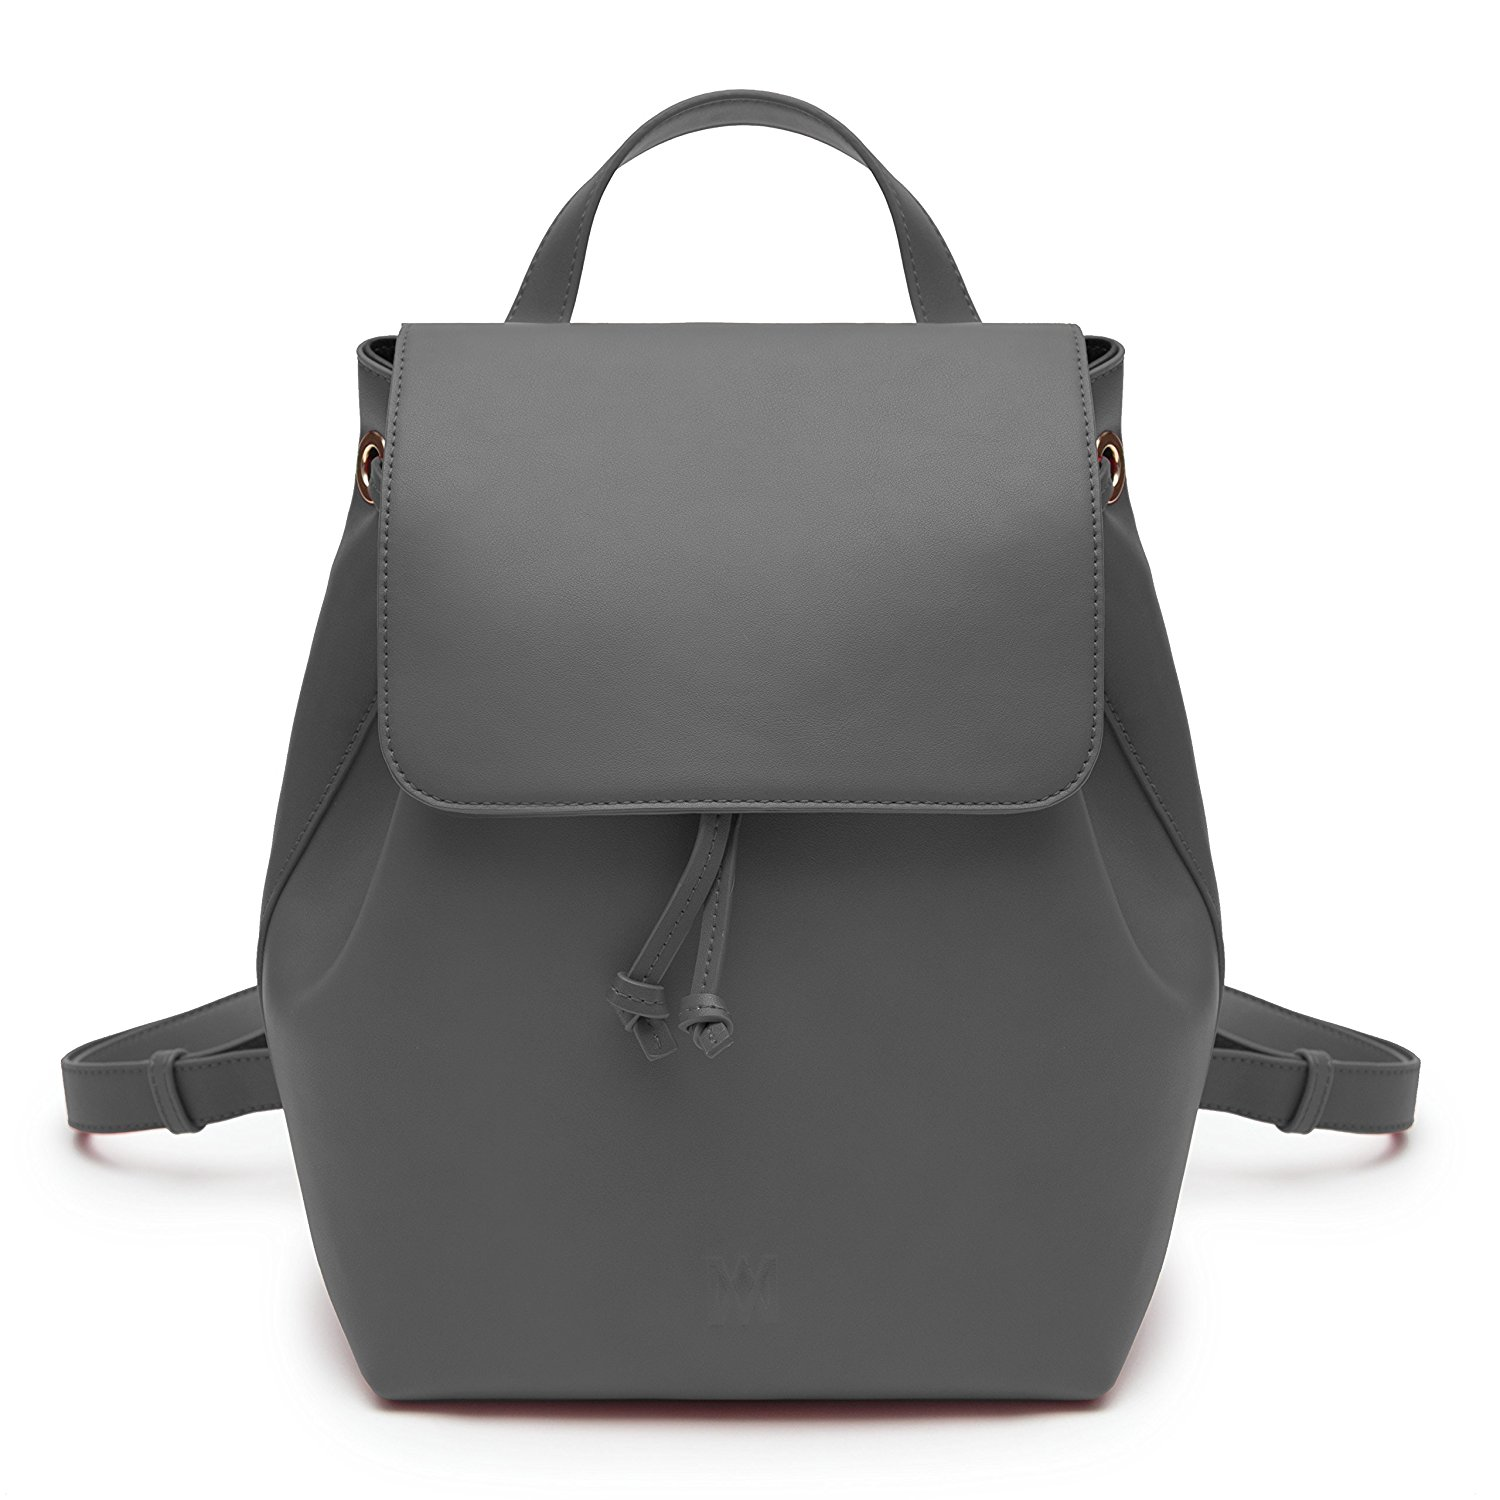 69a0ba5e787a Get Quotations · Marsi Bond Stylish Casual Vegan Faux Leather Fashion  Backpack for Women Scarlett